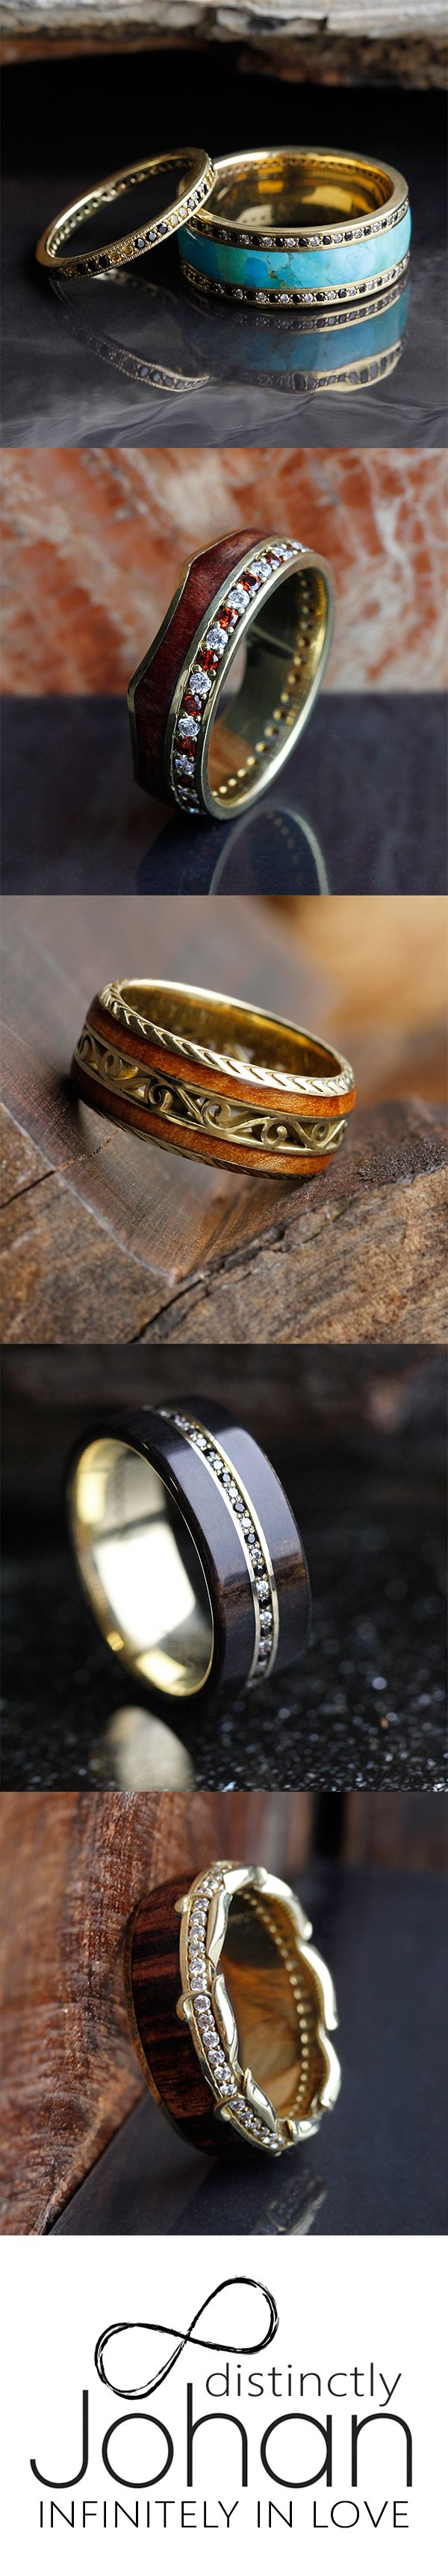 193 best western design wedding bands images on Pinterest